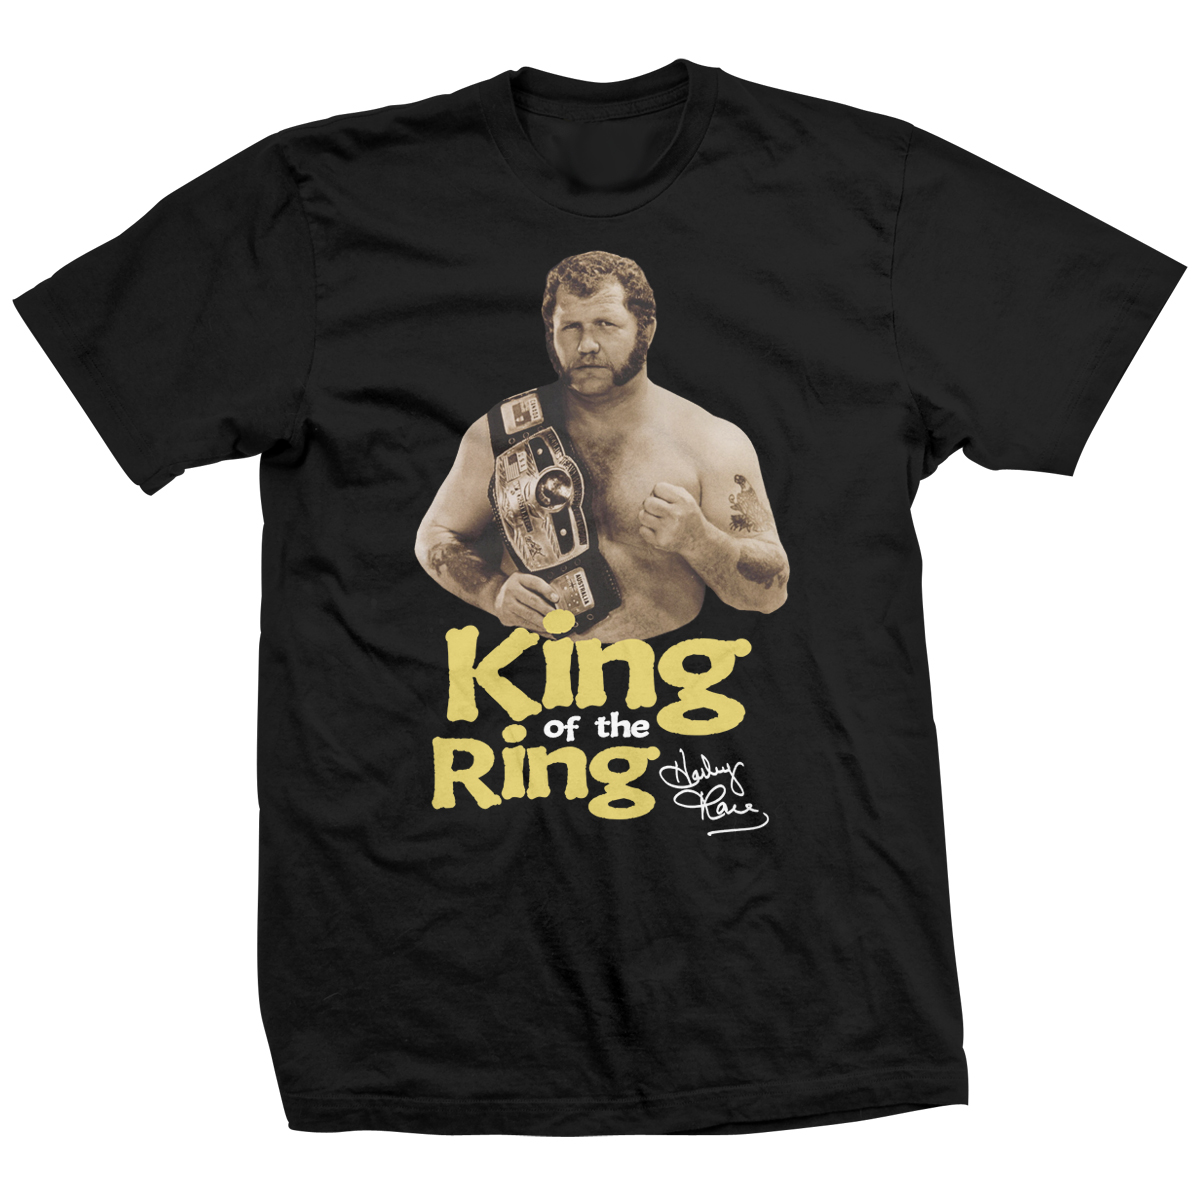 Harley Race King Of The Ring T-shirt